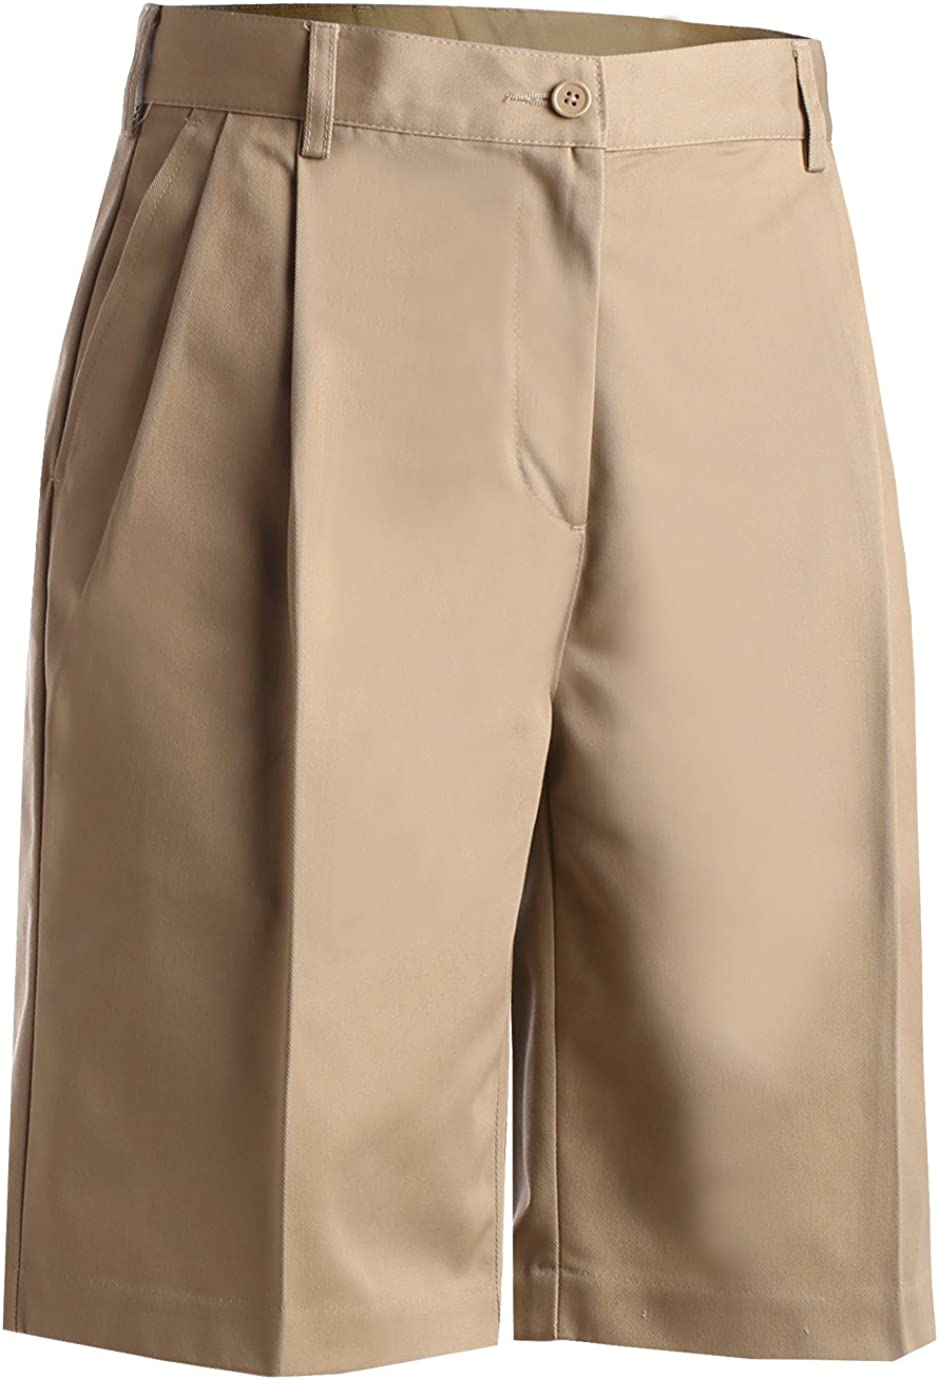 Edwards Garment Womens Moisture Wicking Utility Pleated Front Short